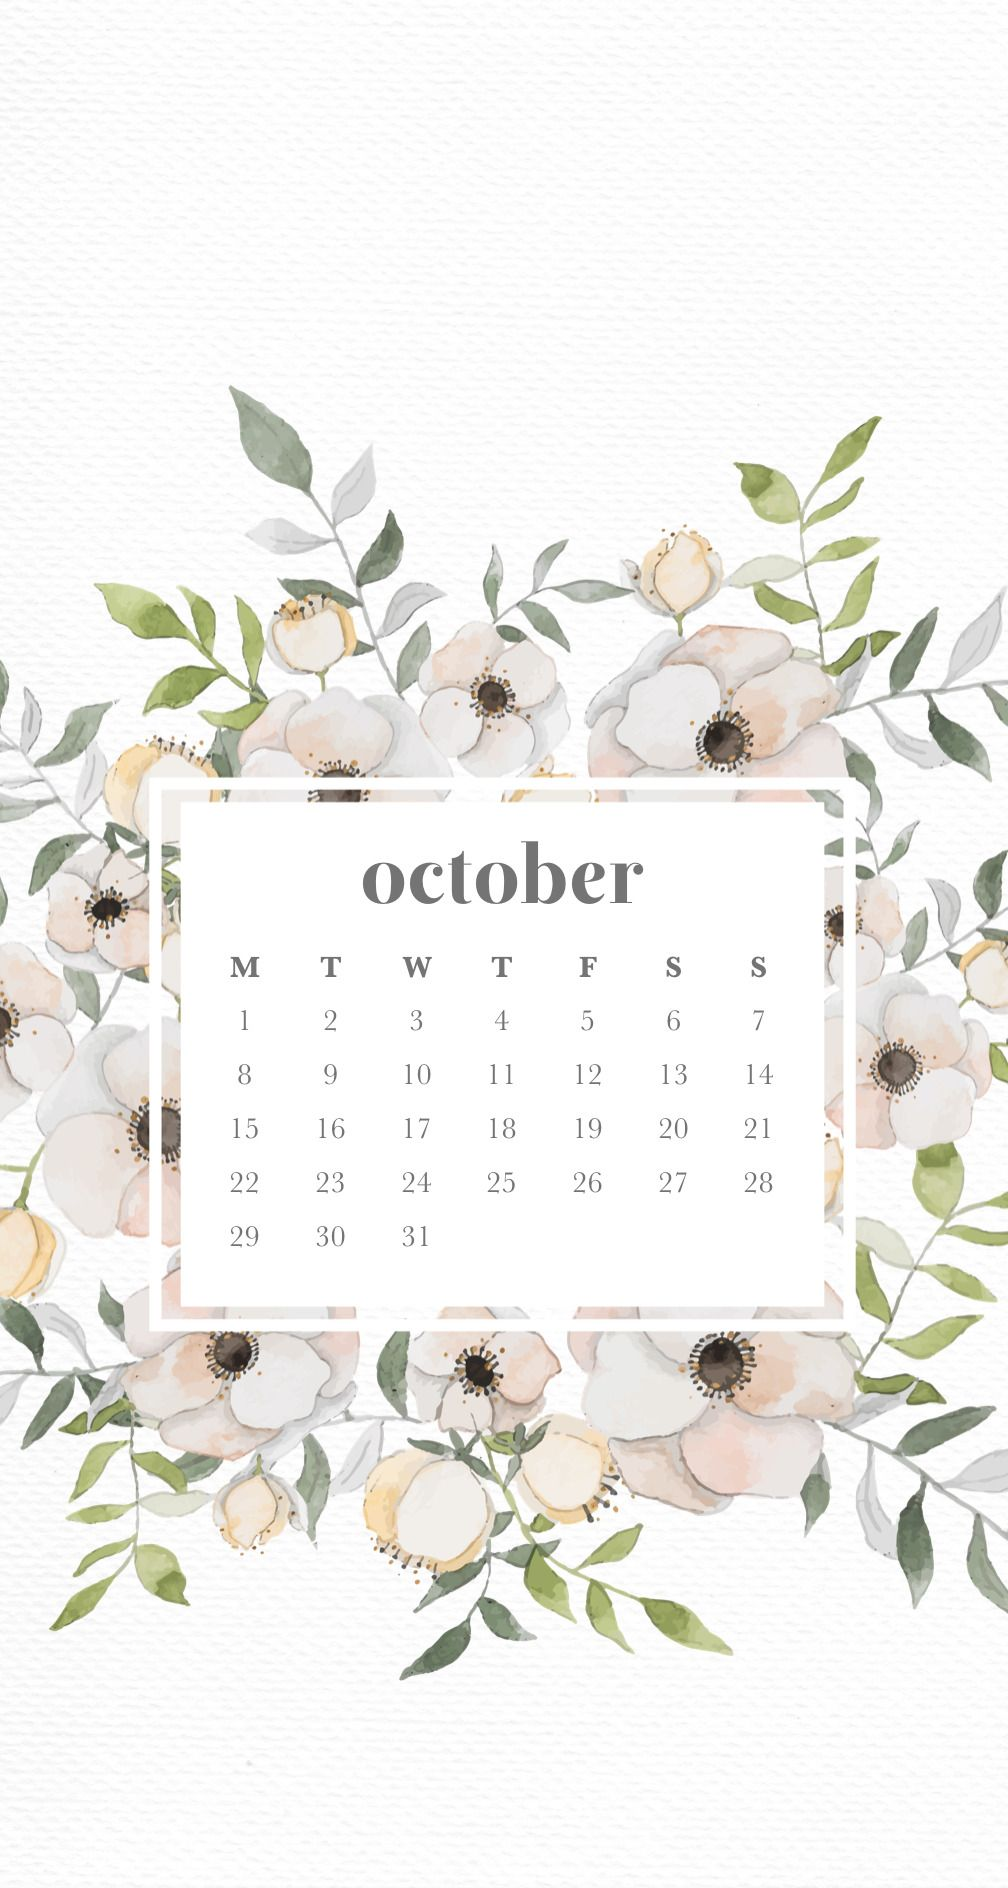 Emma S Studyblr October Floral Phone Wallpapers Here Are Three Calendar Wallpaper Iphone Backgrounds Tumblr Spring Wallpaper